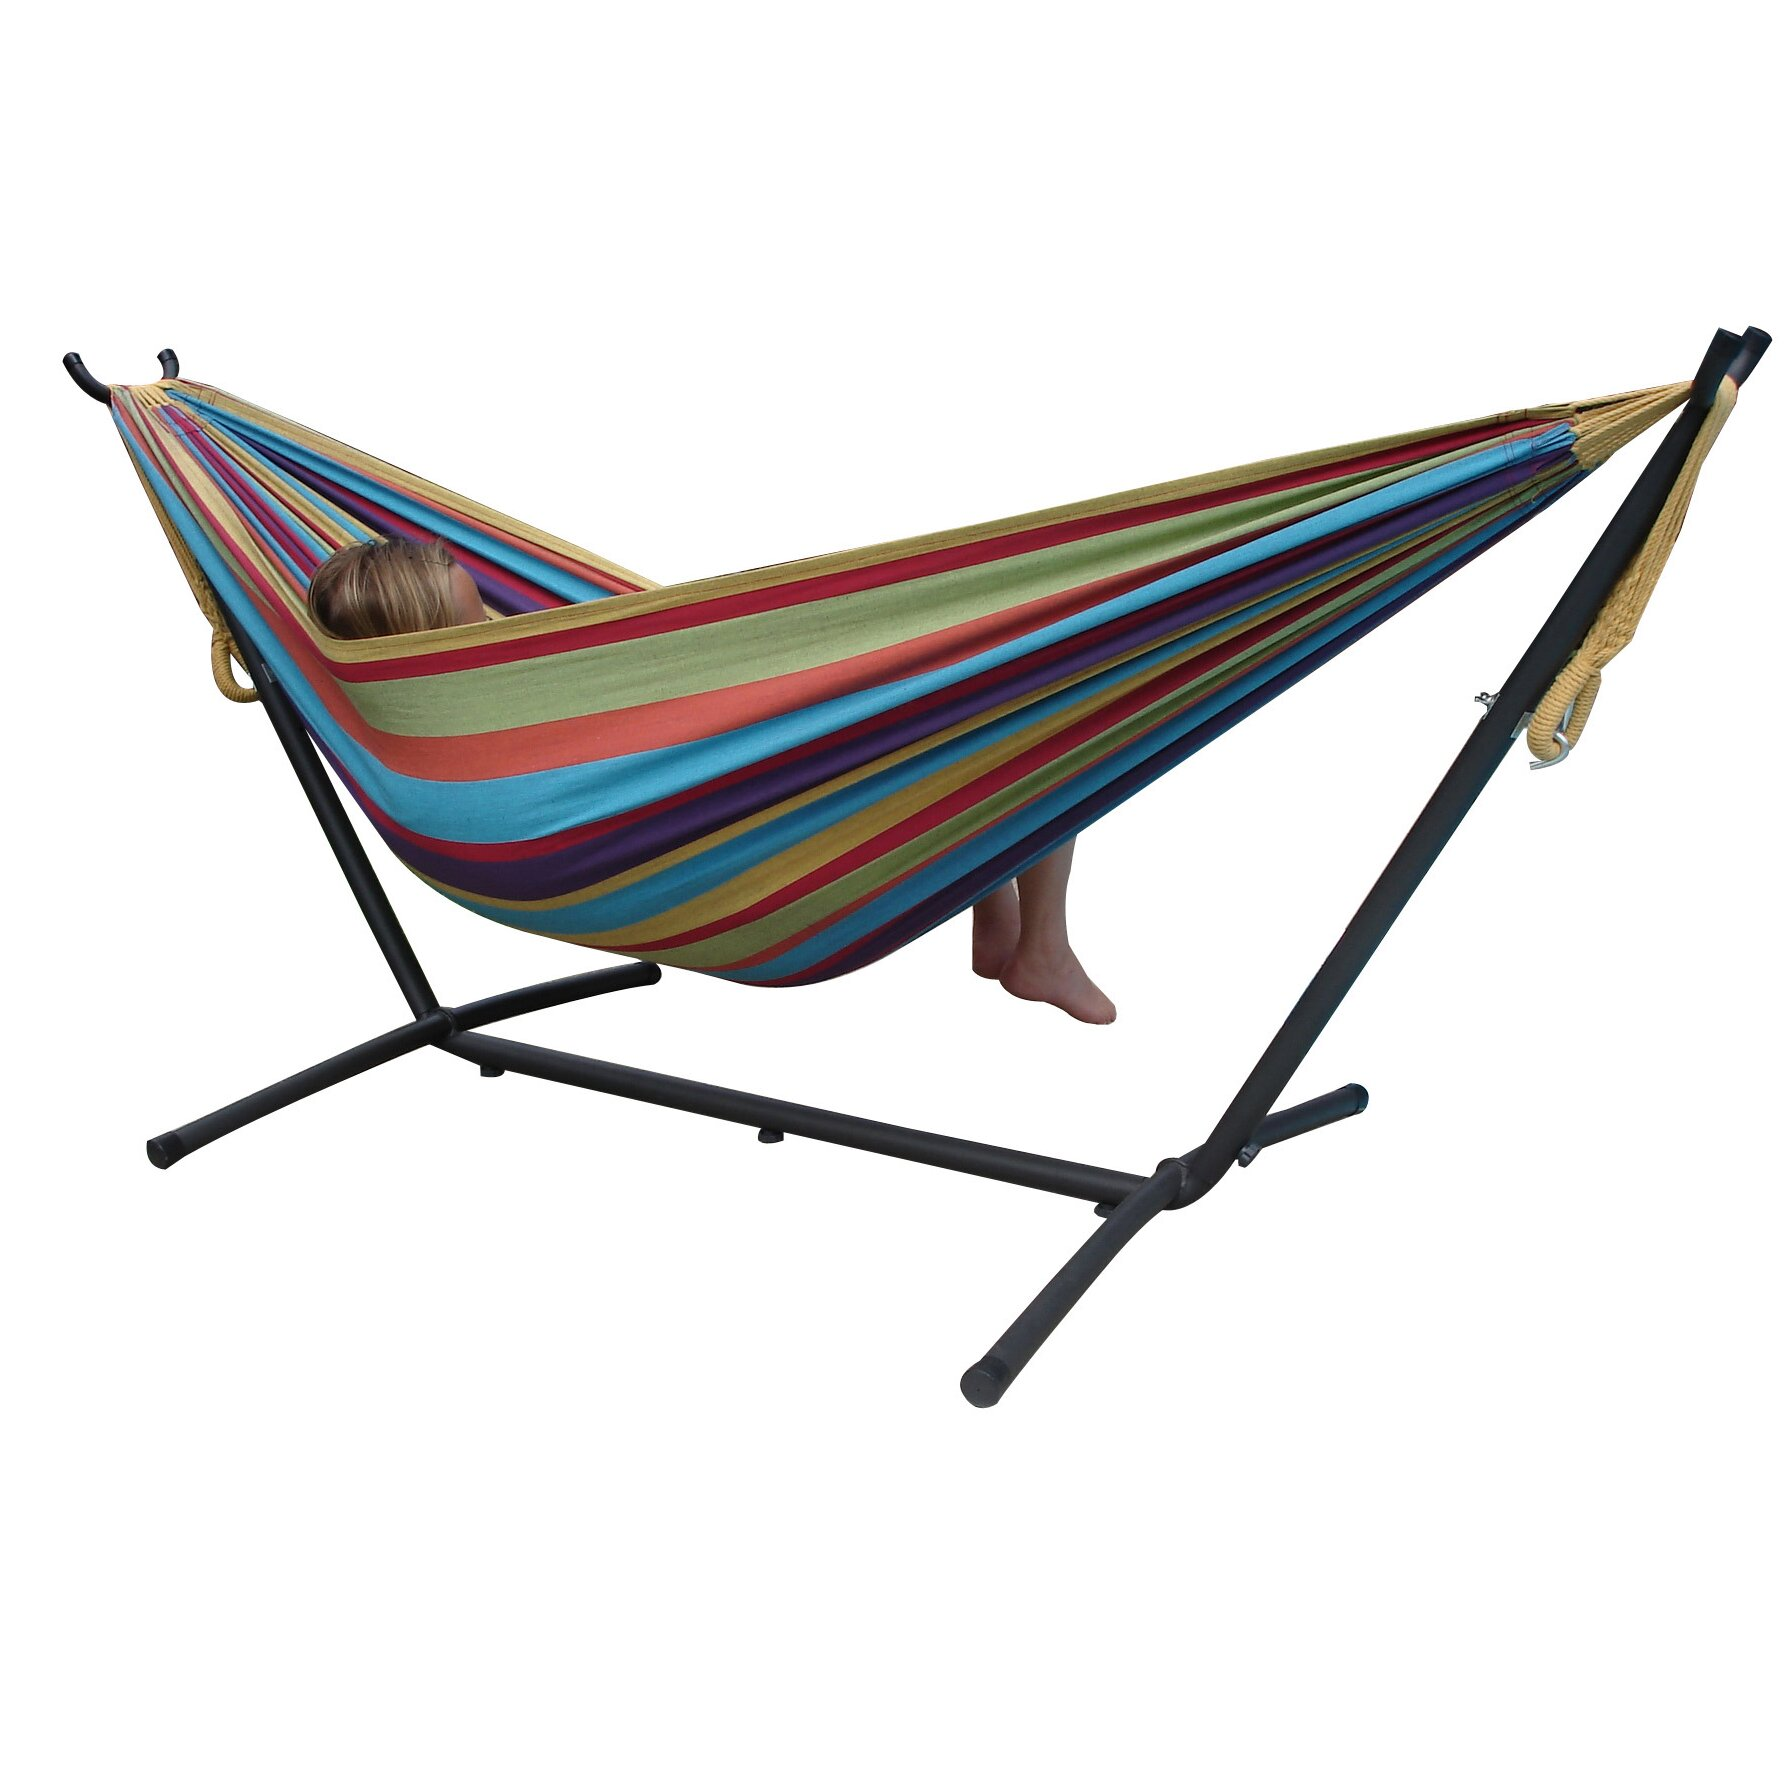 Vivere Hammocks Fabric Hammock with Stand & Reviews | Wayfair